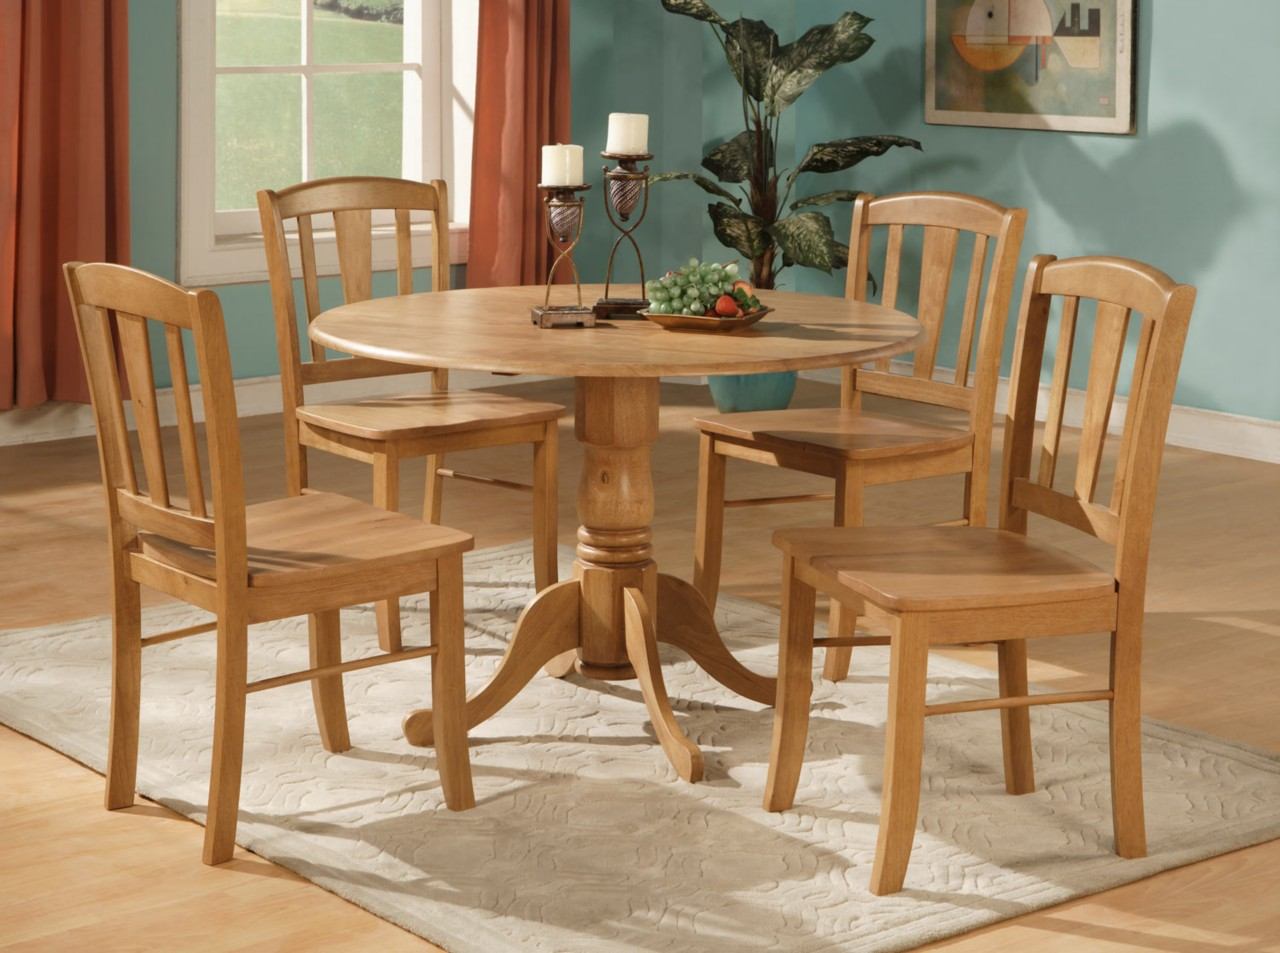 5PC ROUND DINETTE KITCHEN DINING SET TABLE AND 4 CHAIRS eBay : 481368078o from www.ebay.com size 1280 x 953 jpeg 220kB